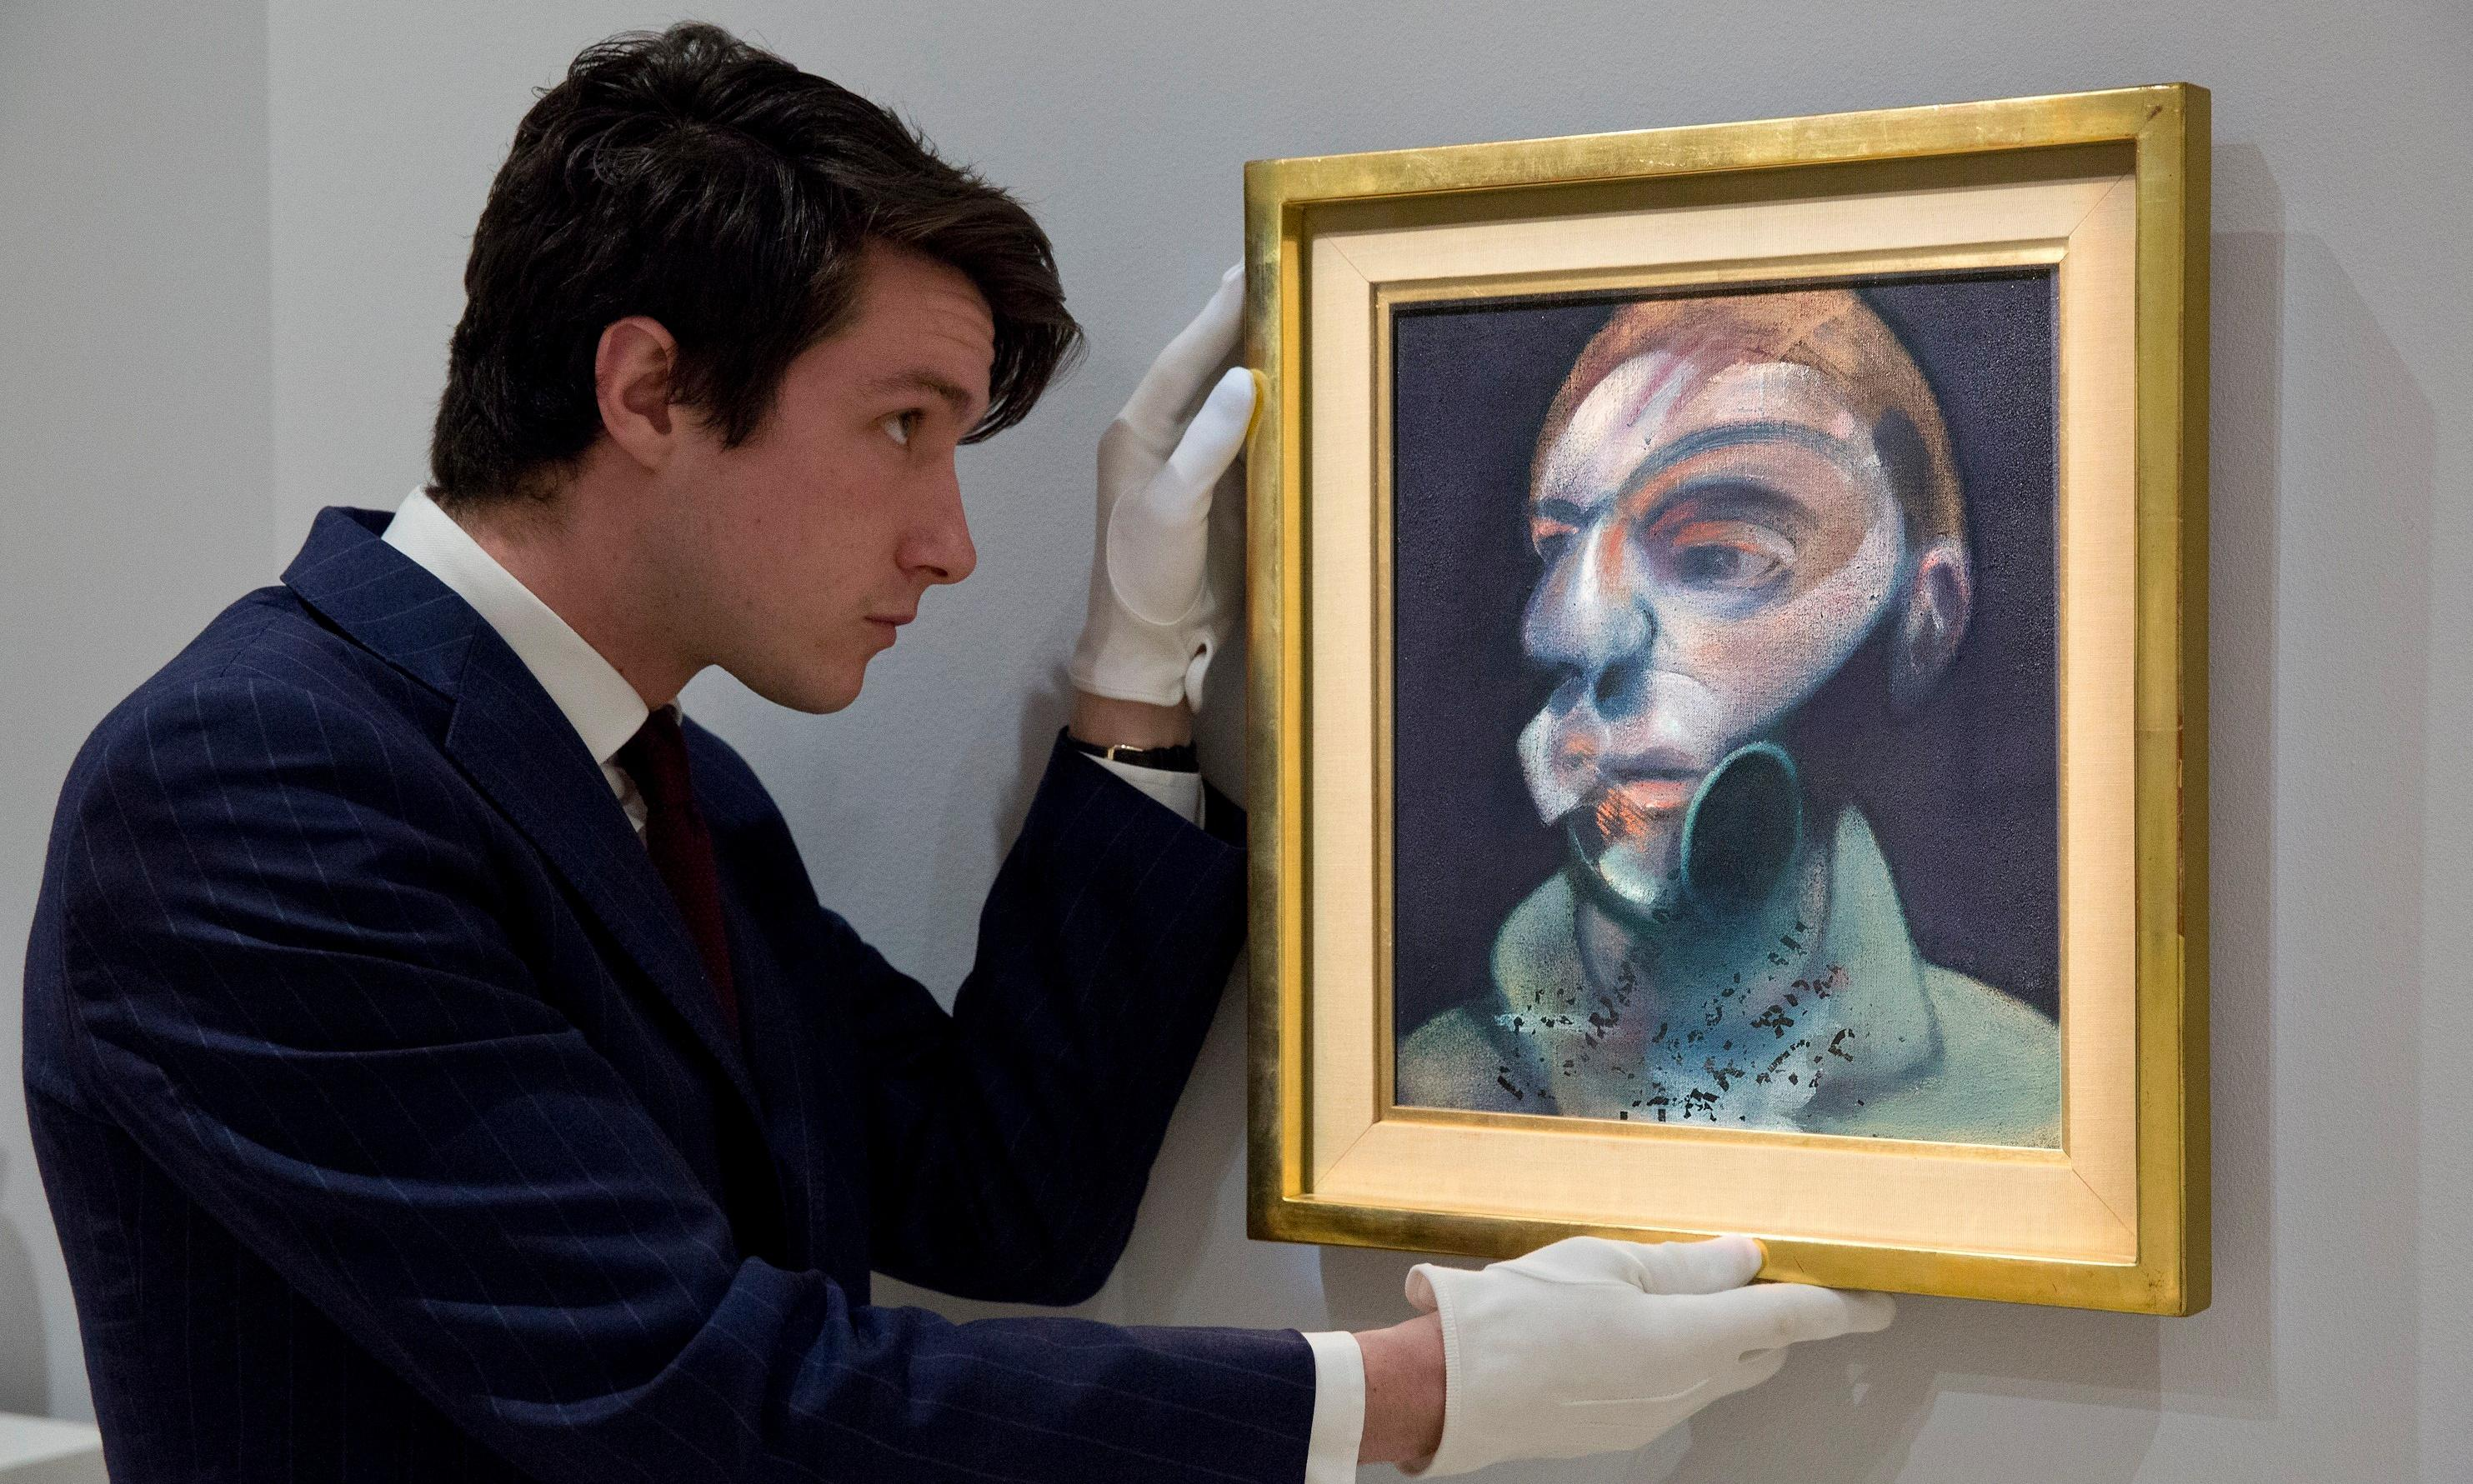 How to move a masterpiece: the secret business of shipping priceless artworks